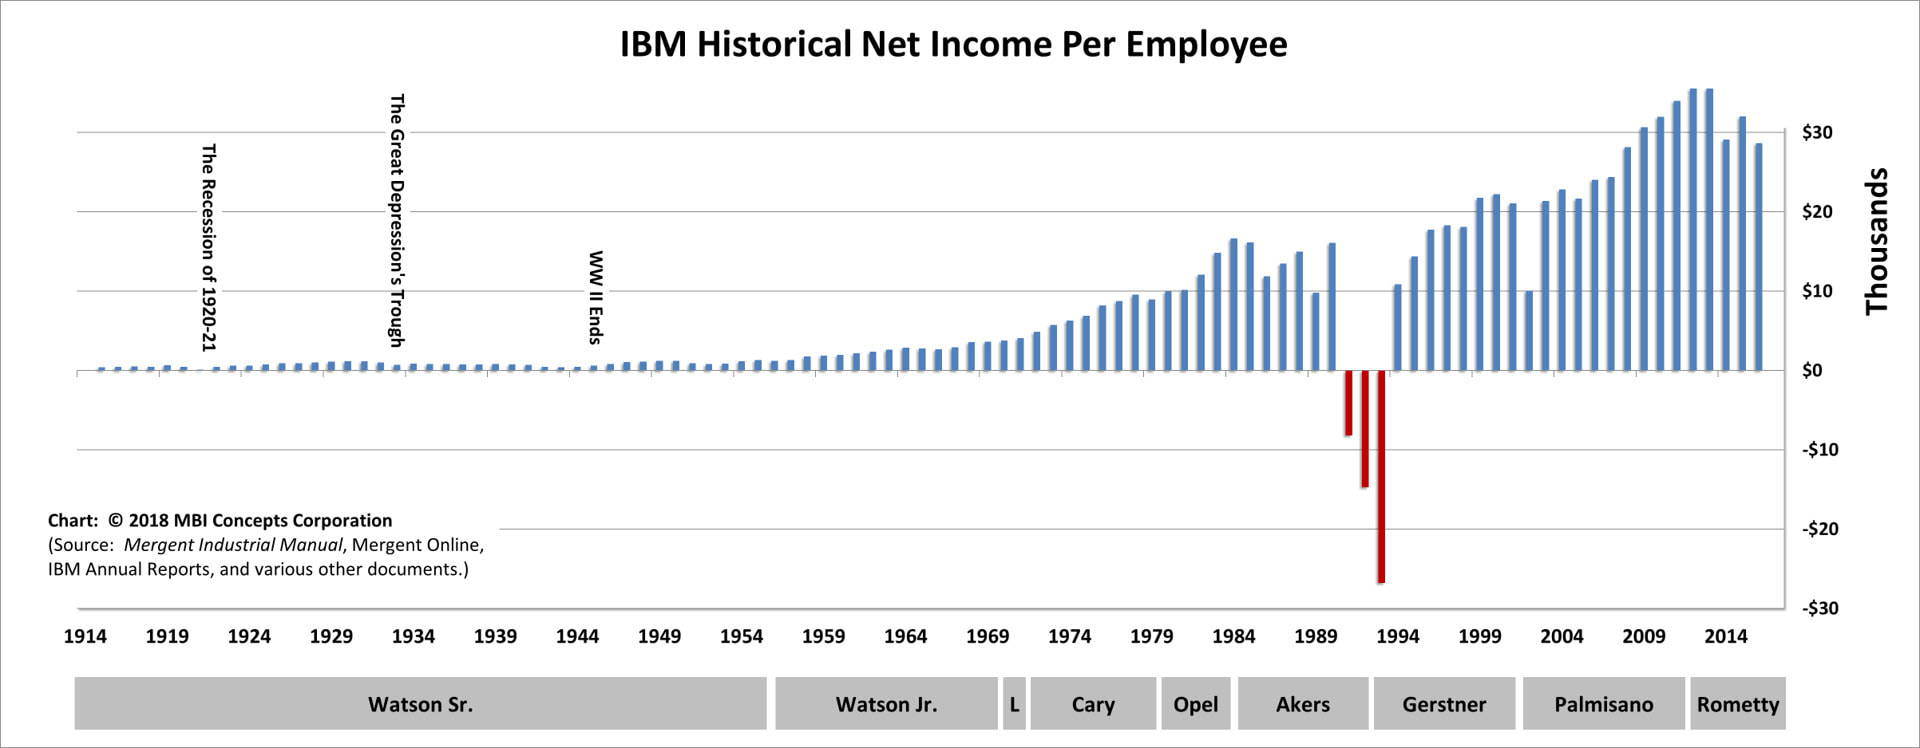 Bar Chart of IBM's Yearly Net Income per Employee over its 100+ Years (1914 - 2016) mapped to each of its CEOs